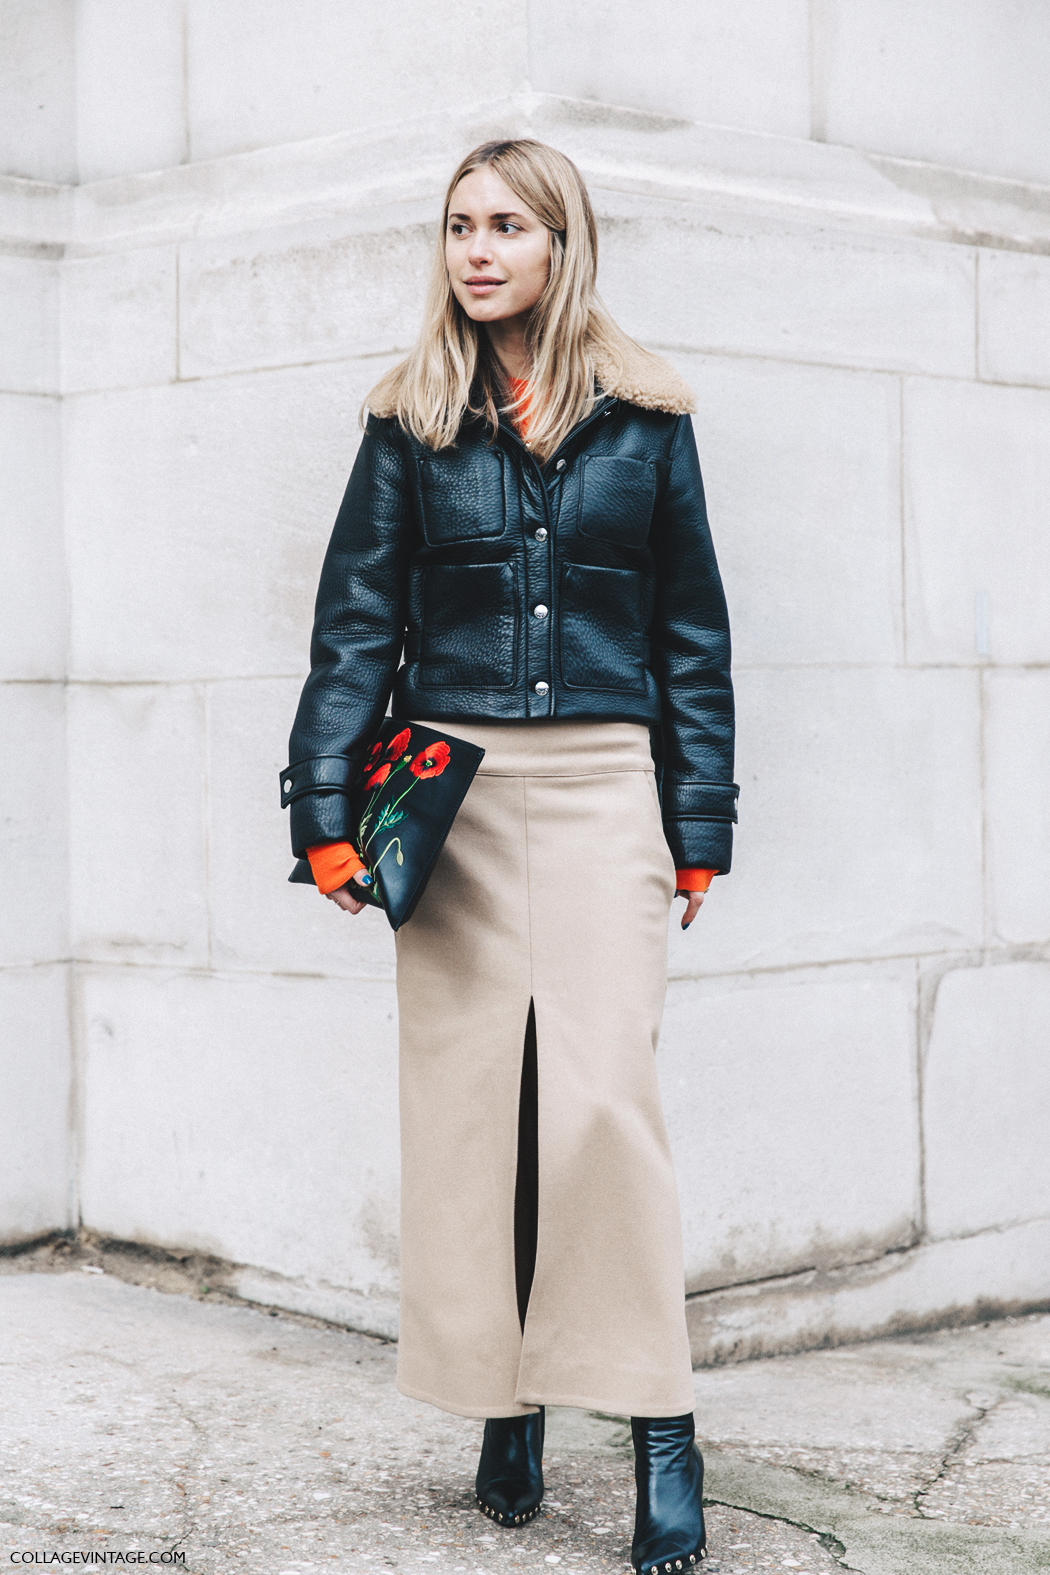 PFW-Paris_Fashion_Week_Fall_2016-Street_Style-Collage_Vintage-Pernille_Teisbaek-Camel_Skirt-Celine_boots-4